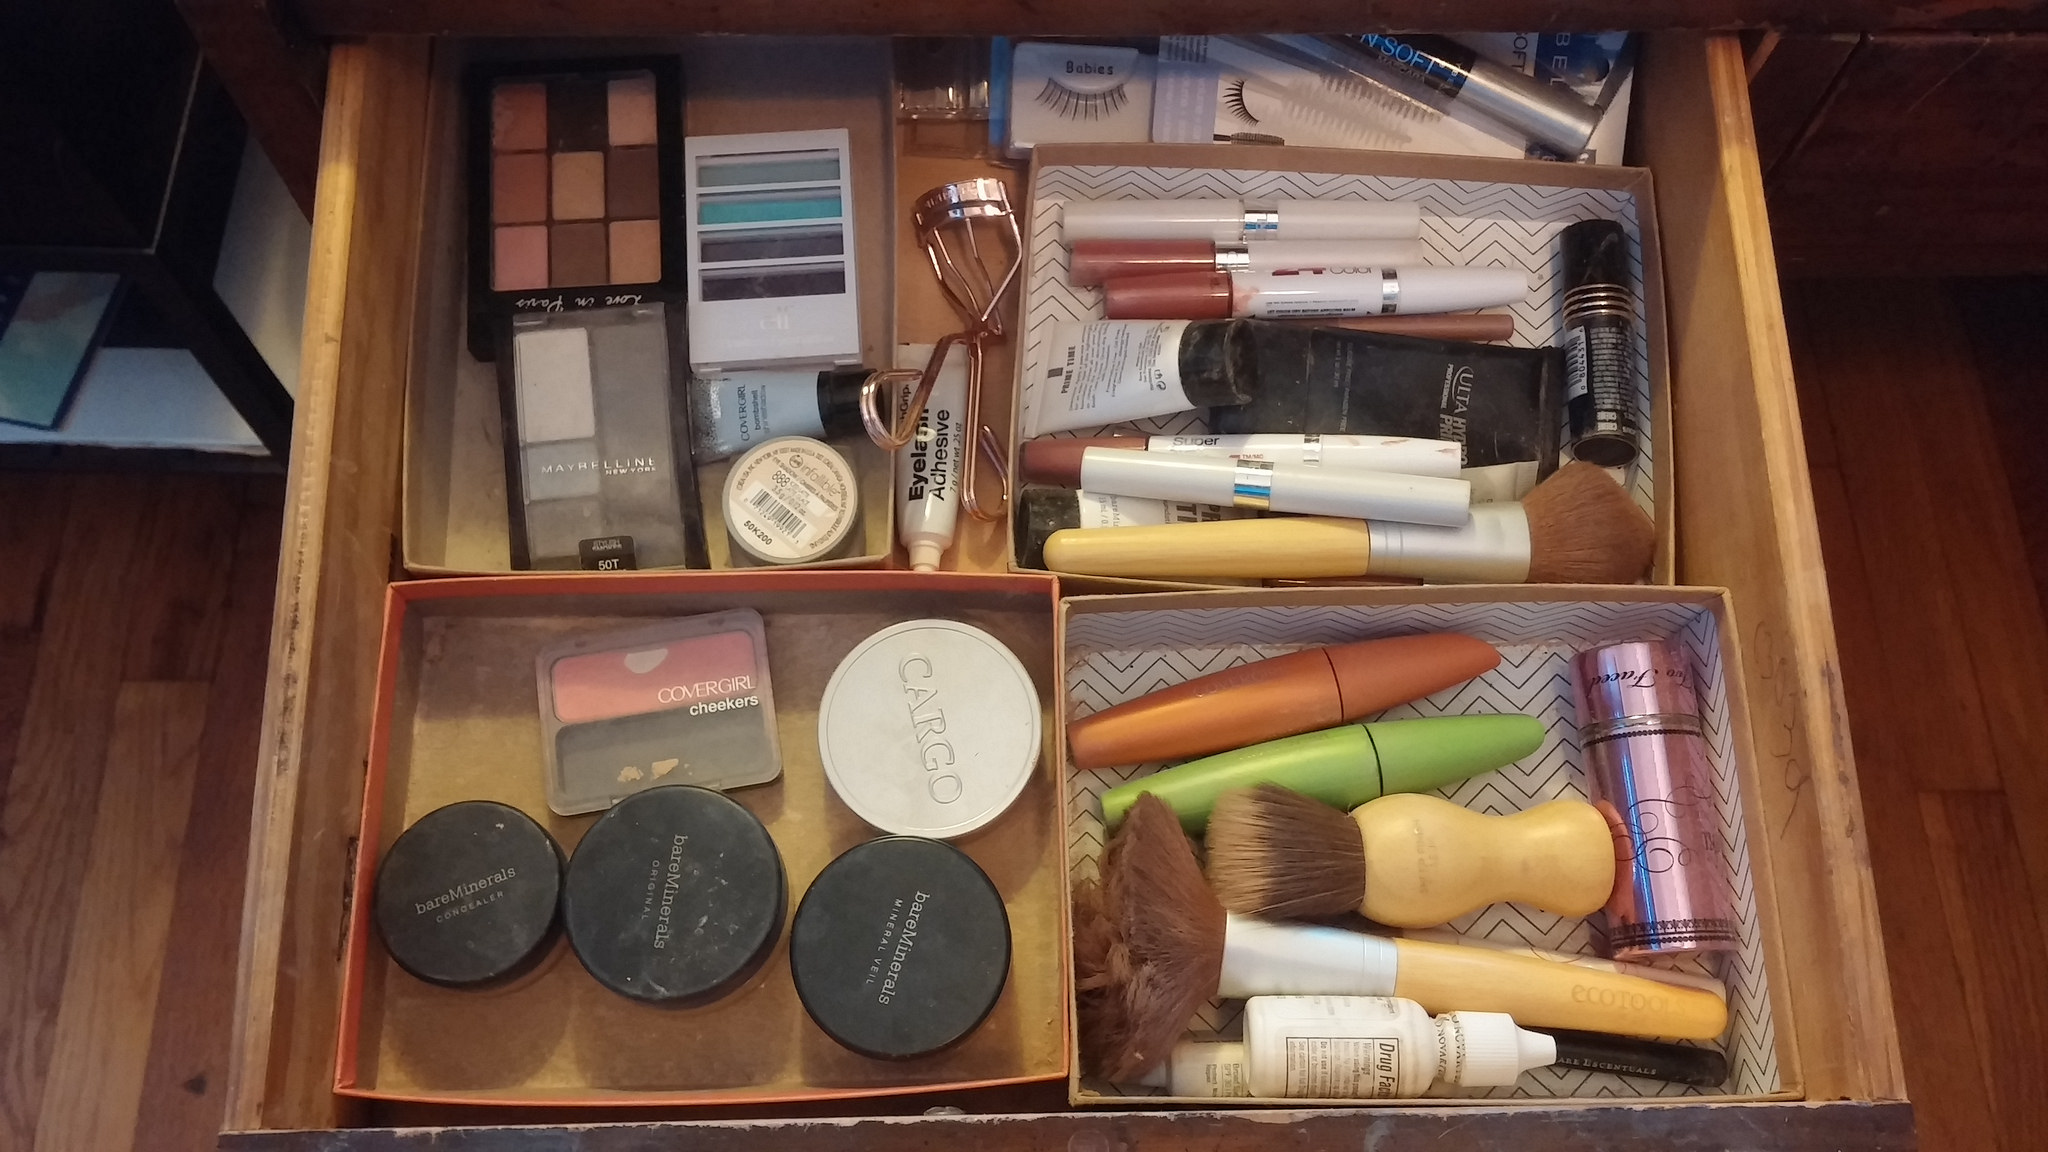 My neglected makeup drawer, with my frugal cardboard box organizational system.